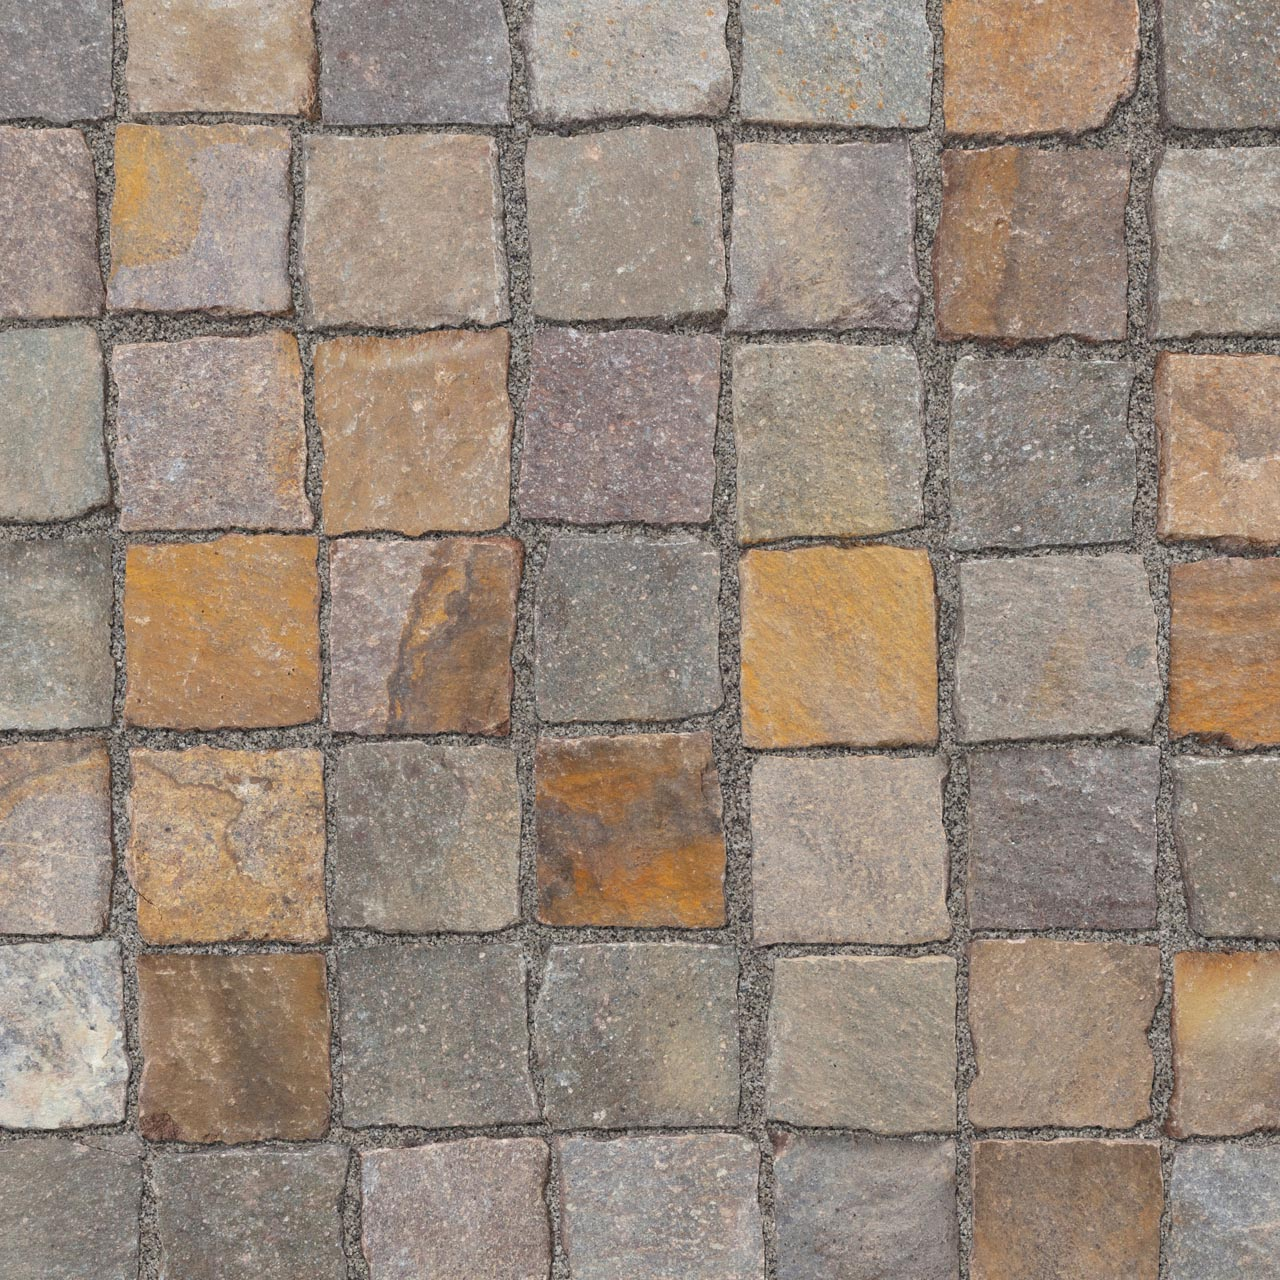 Cropped Porphyry Setts 100mm x 100mm x 50mm image 0